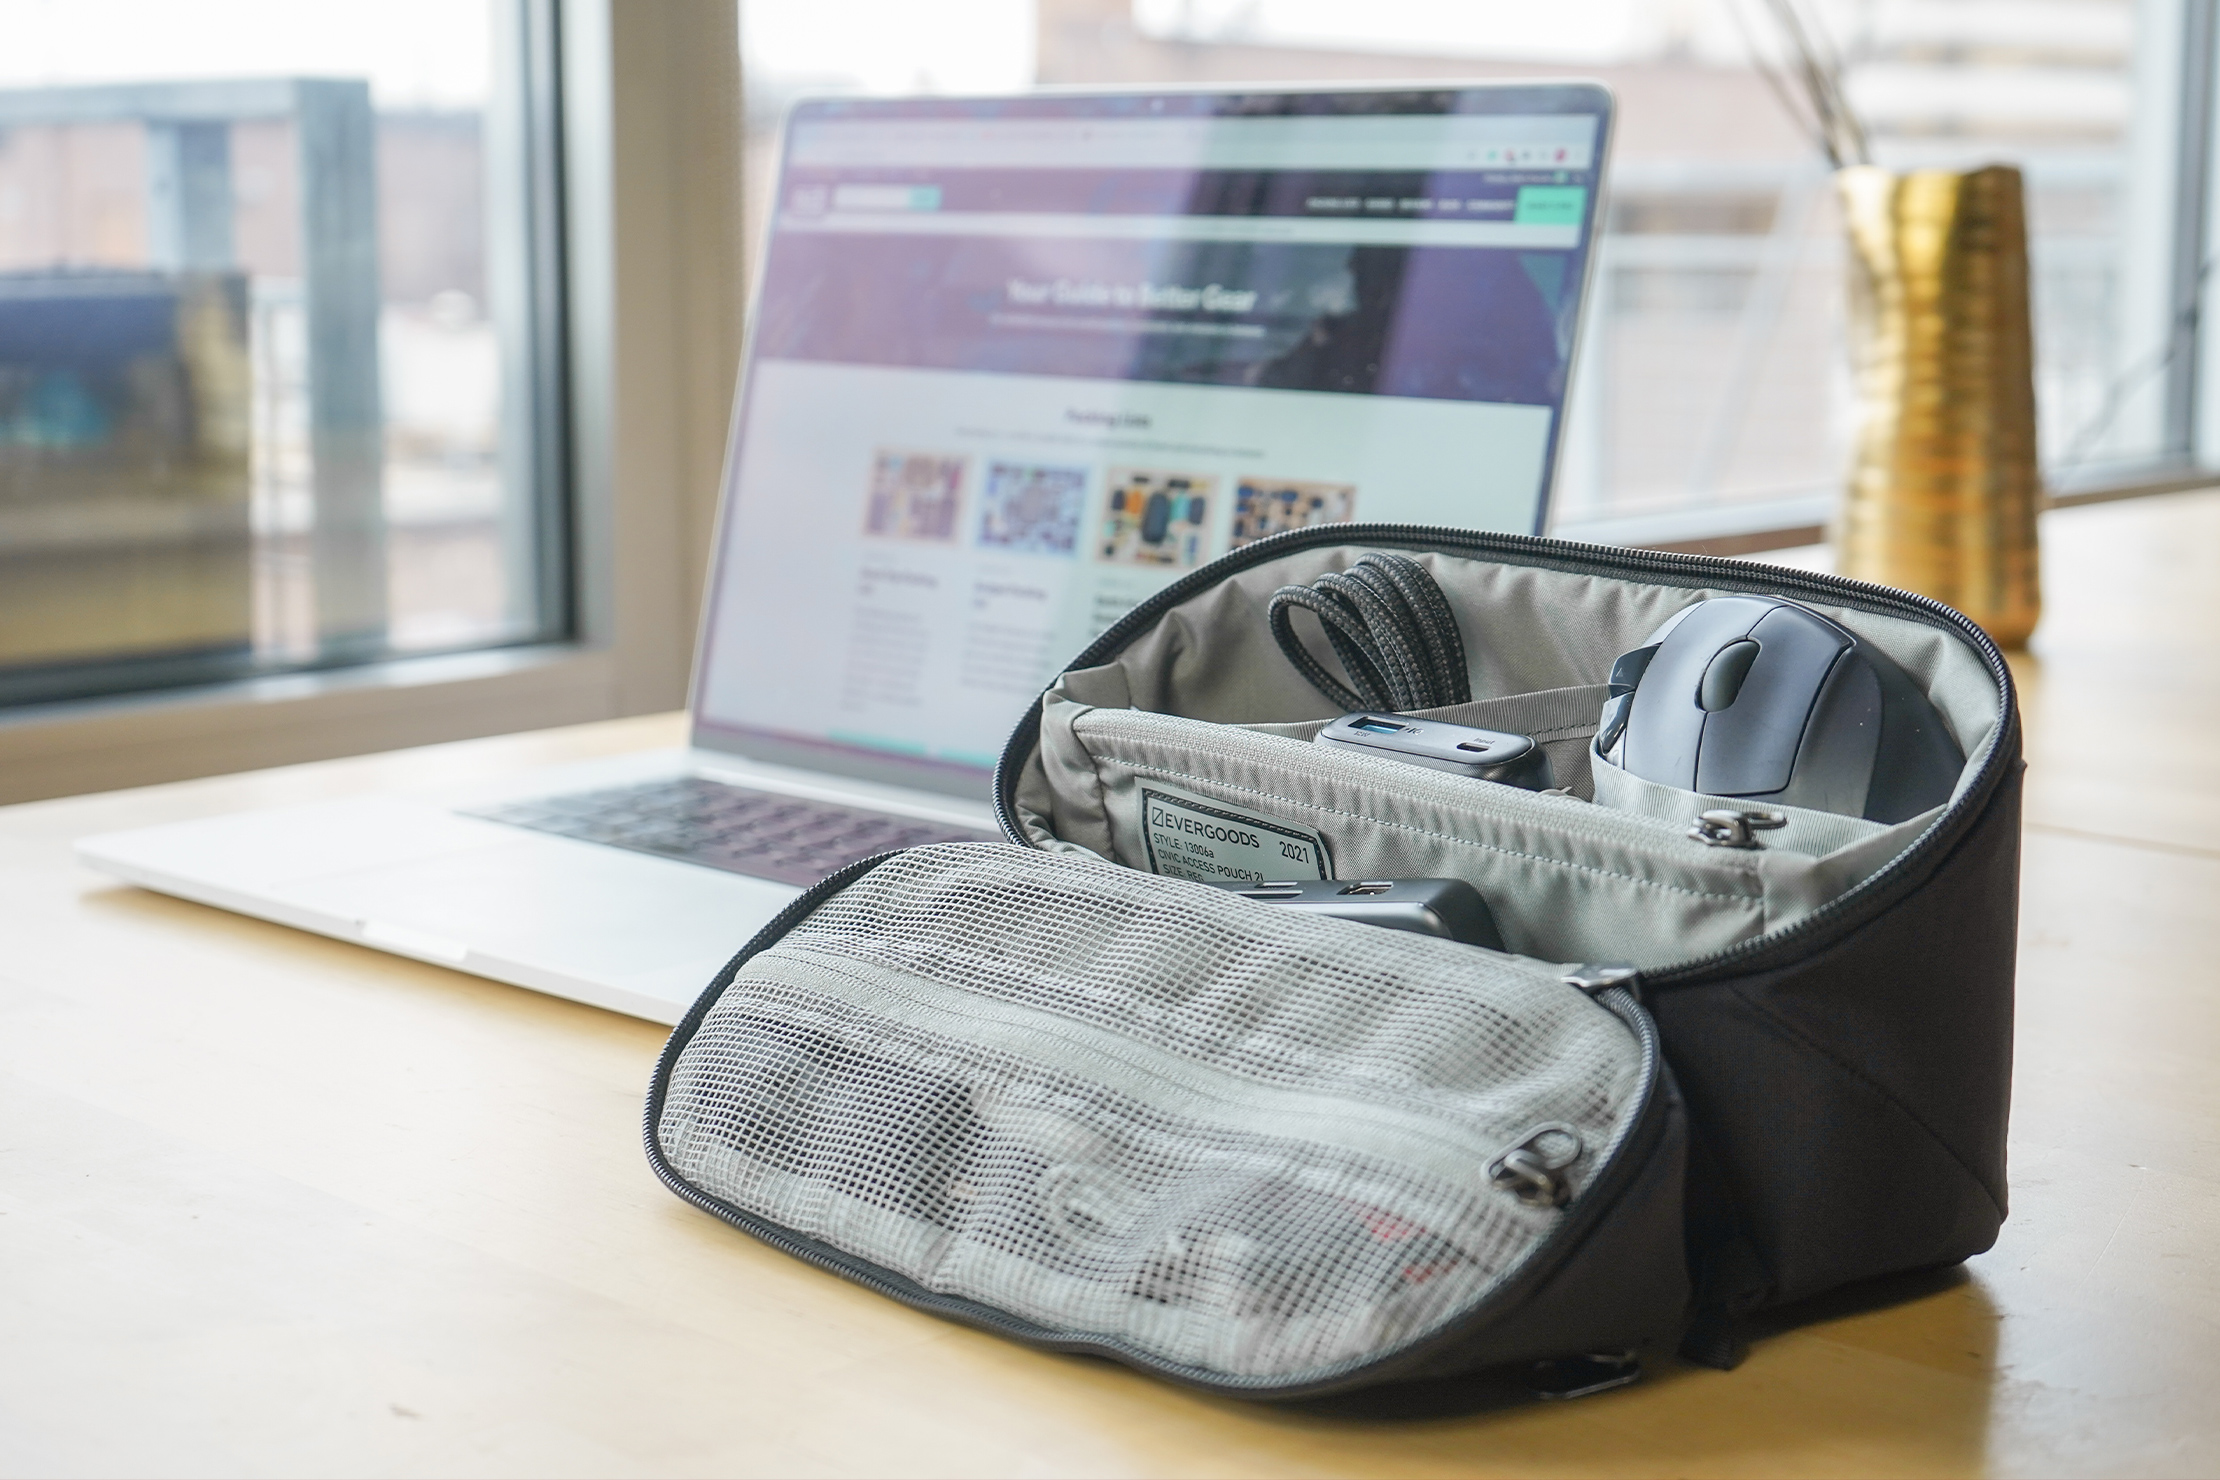 EVERGOODS Civic Access Pouch 2L Review